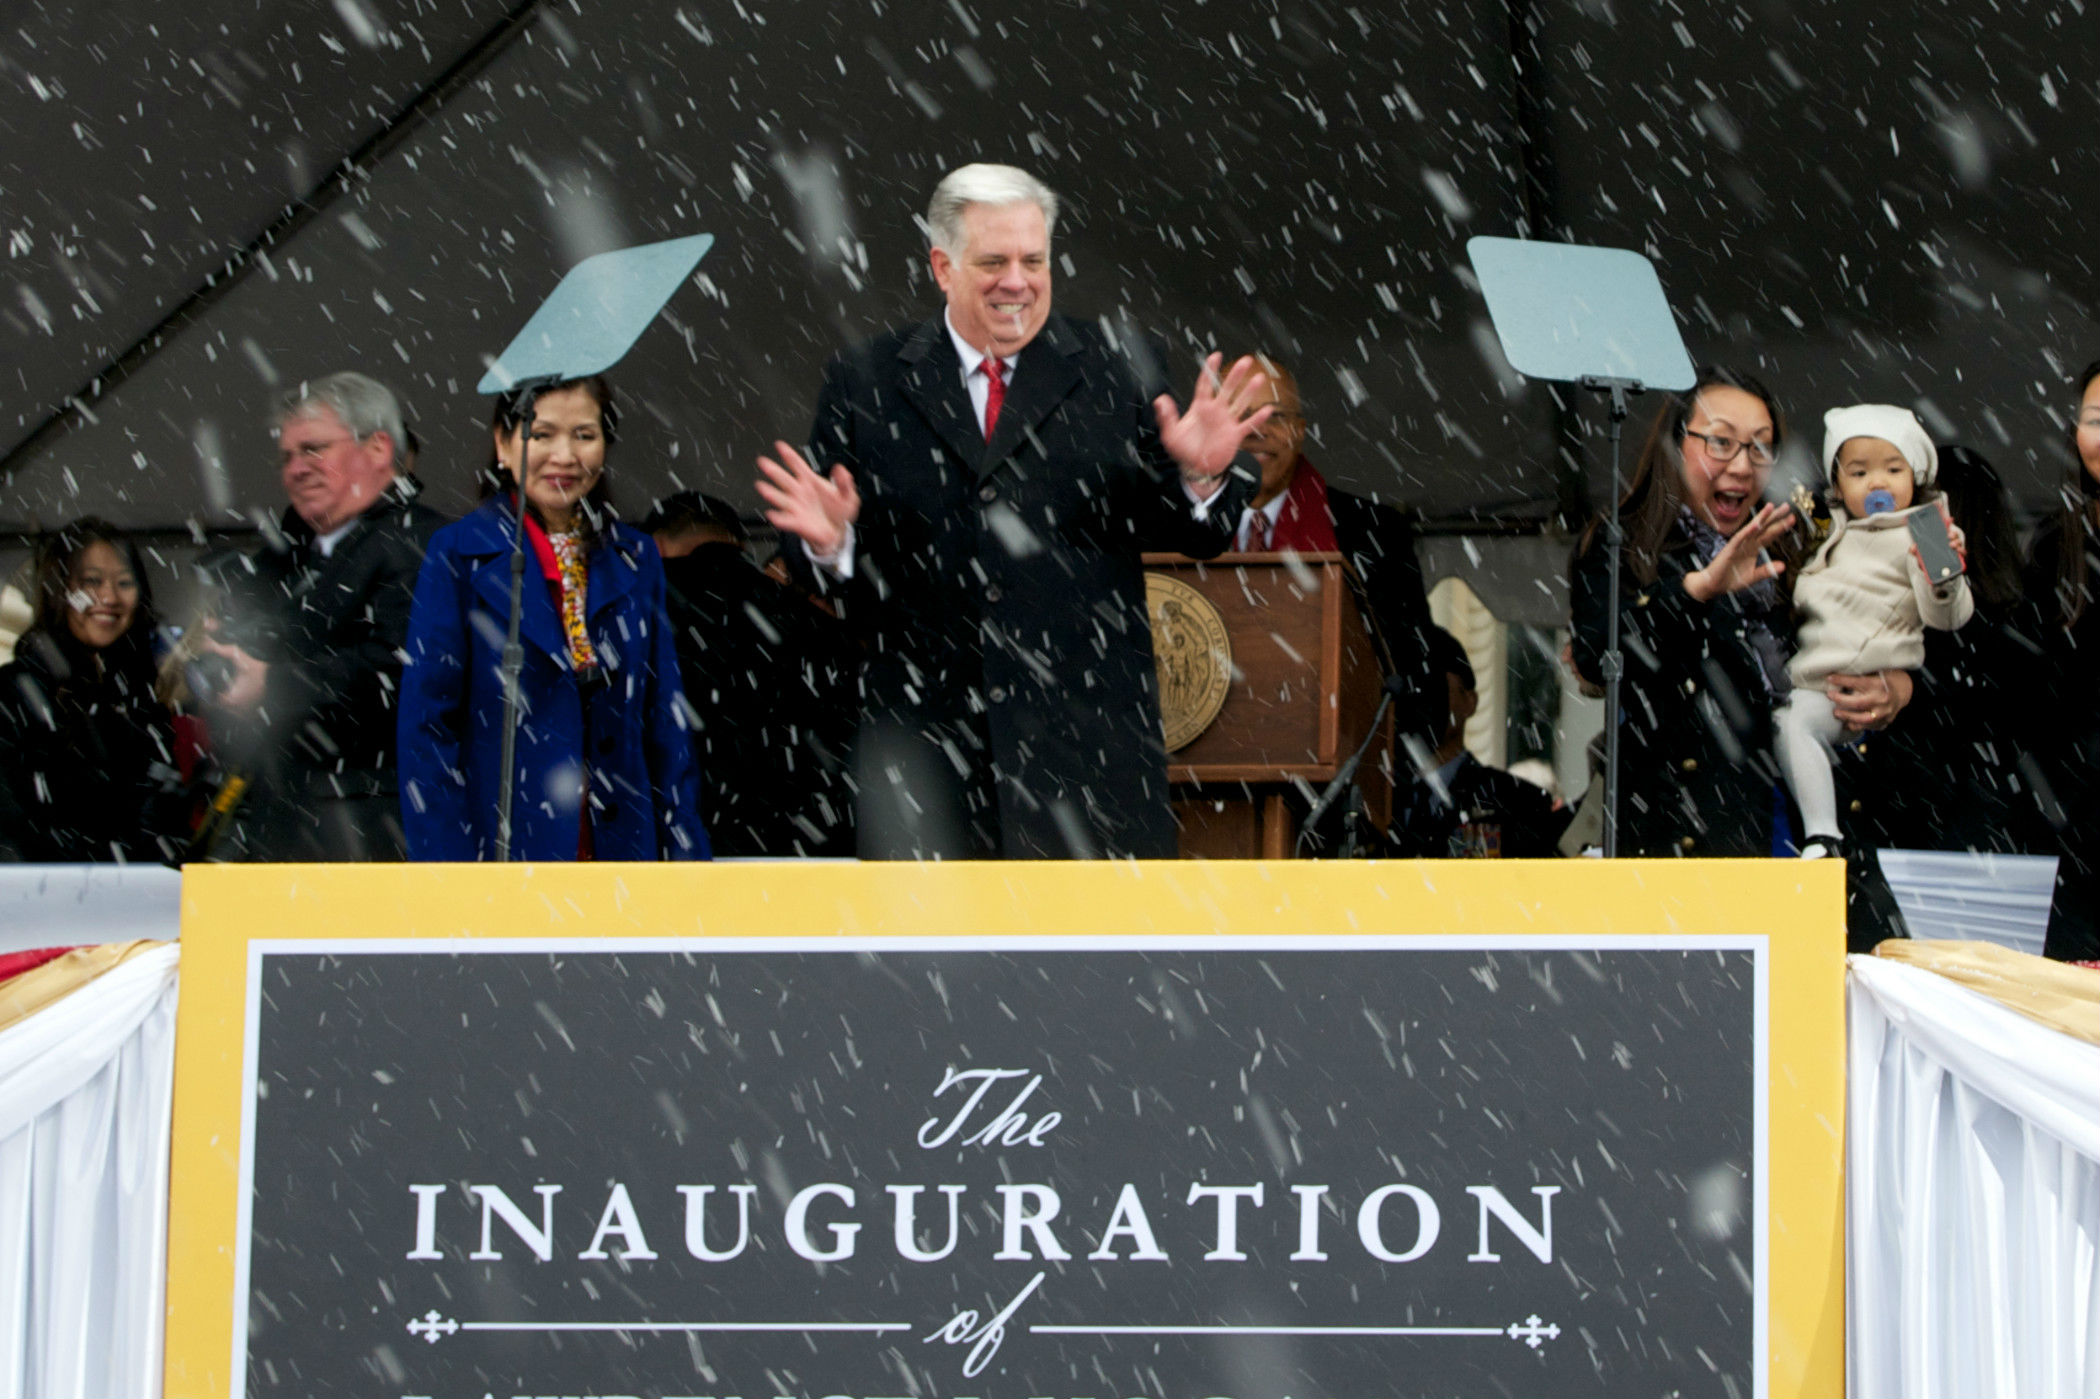 Photos from Hogan's inauguration